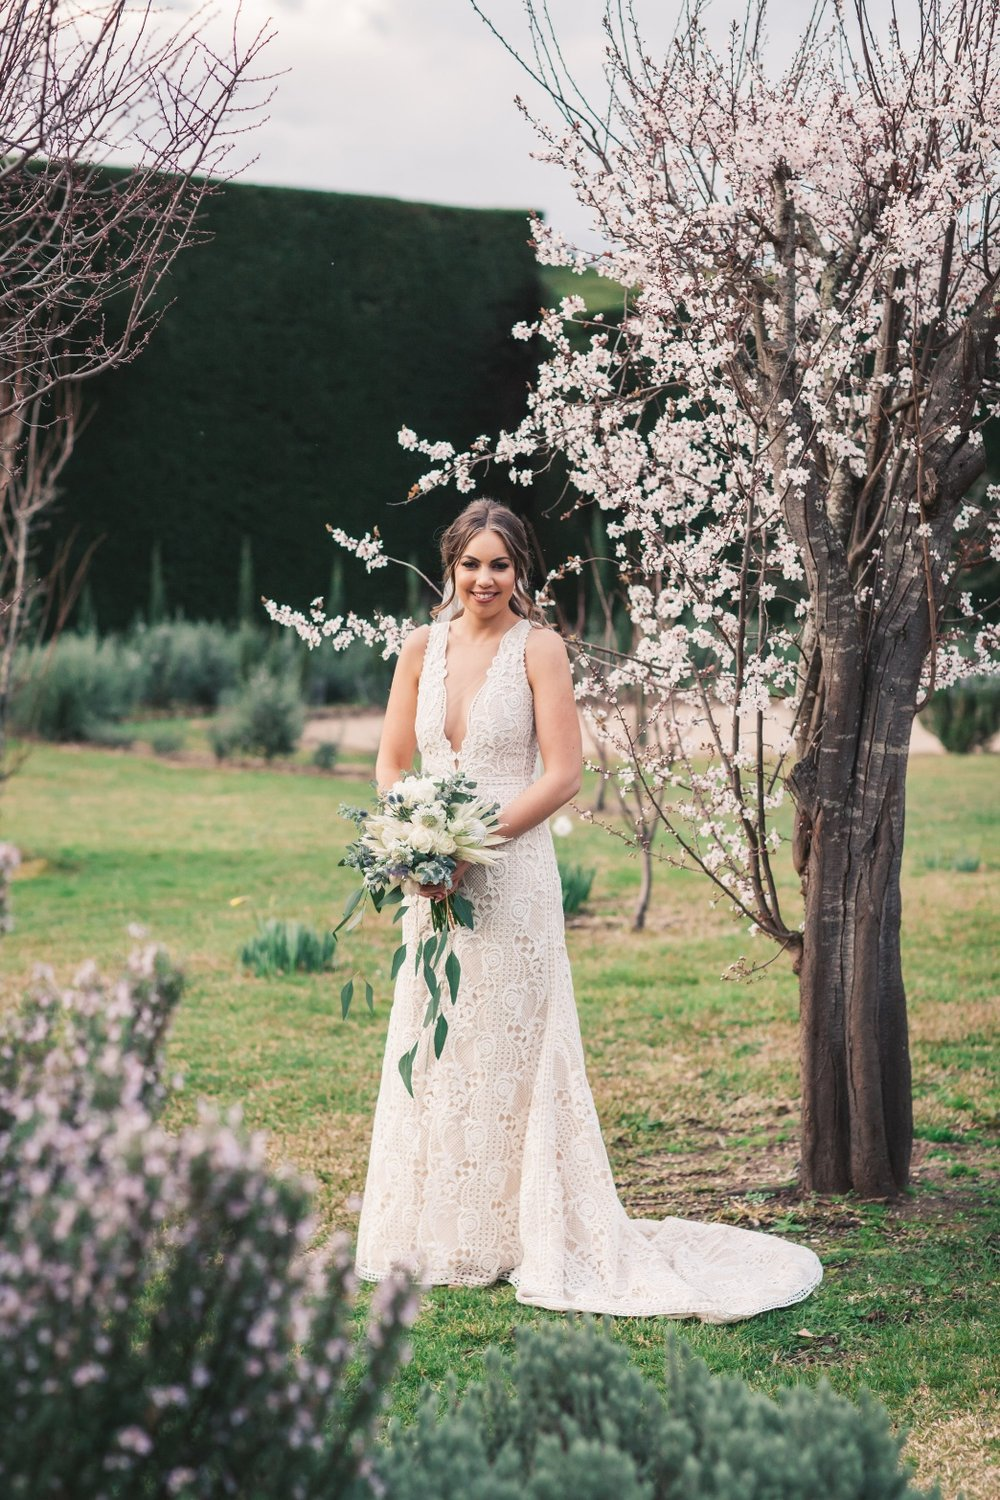 Beck in the Bronte Wedding Dress by Suzanne Harward as featured on LOVE FIND CO.